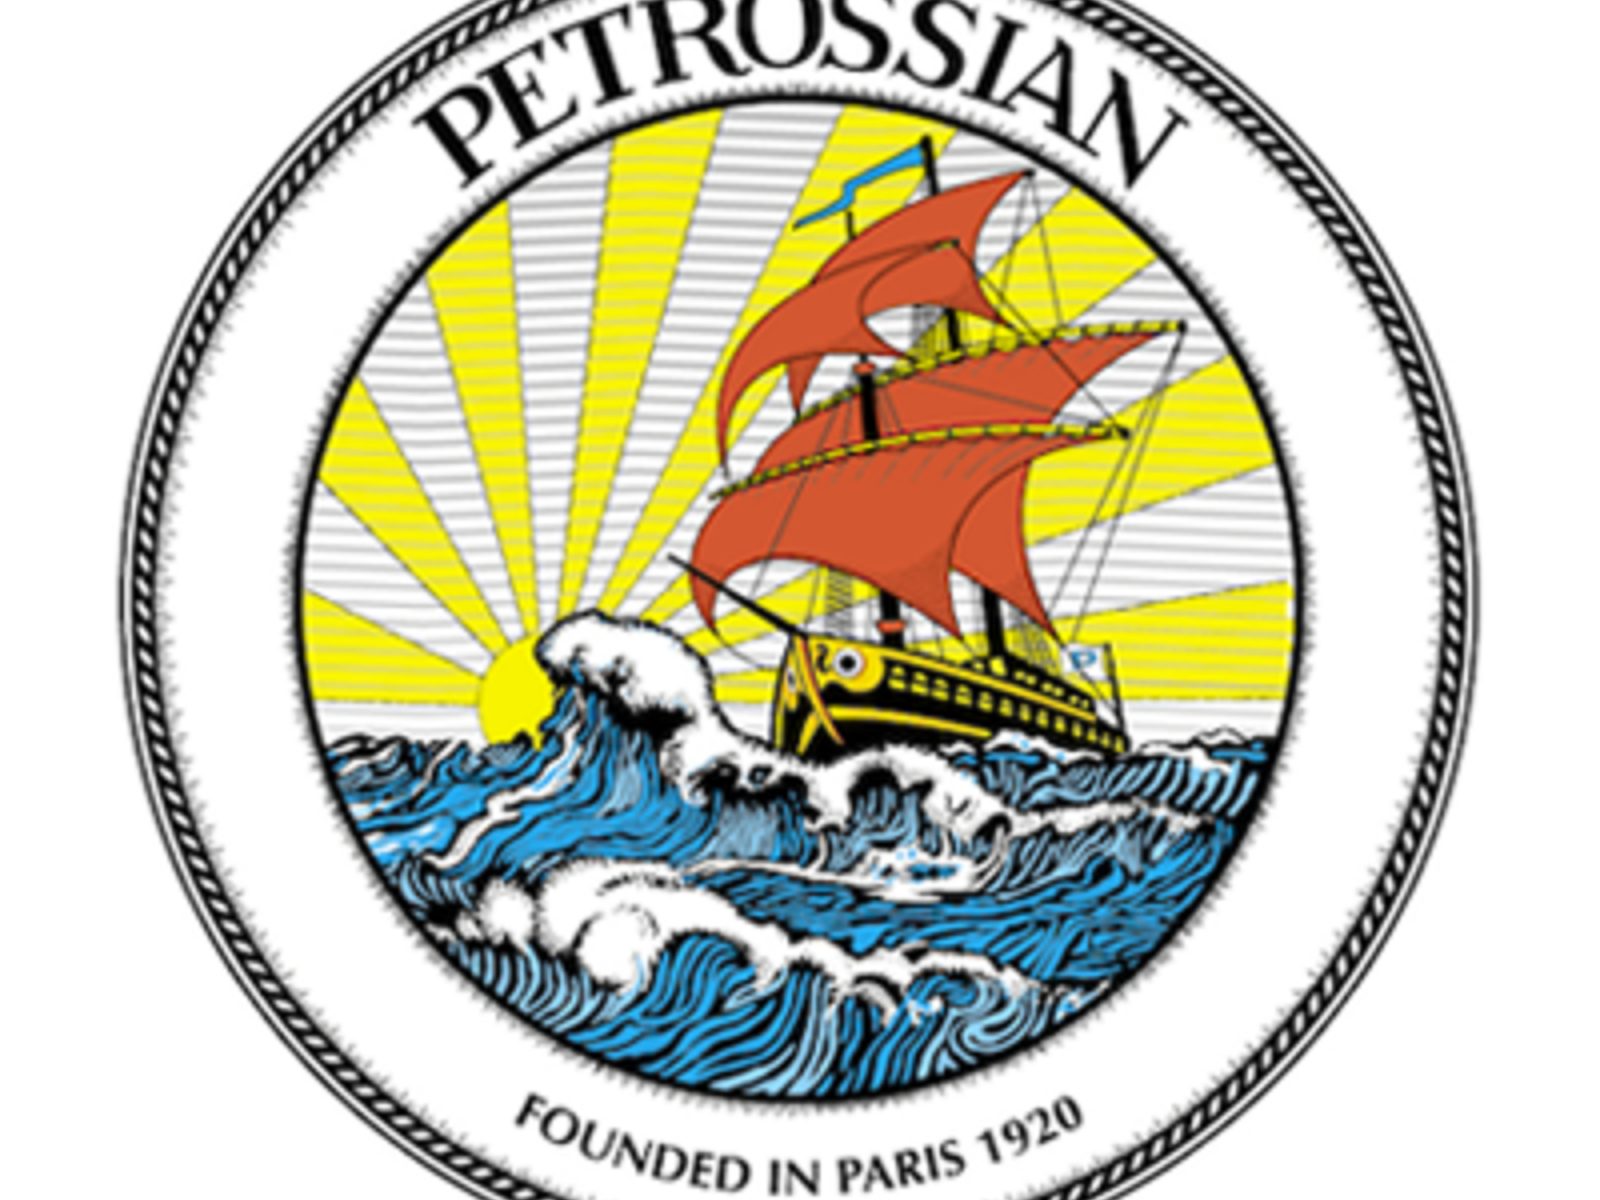 Petrossian Restaurant & Boutique